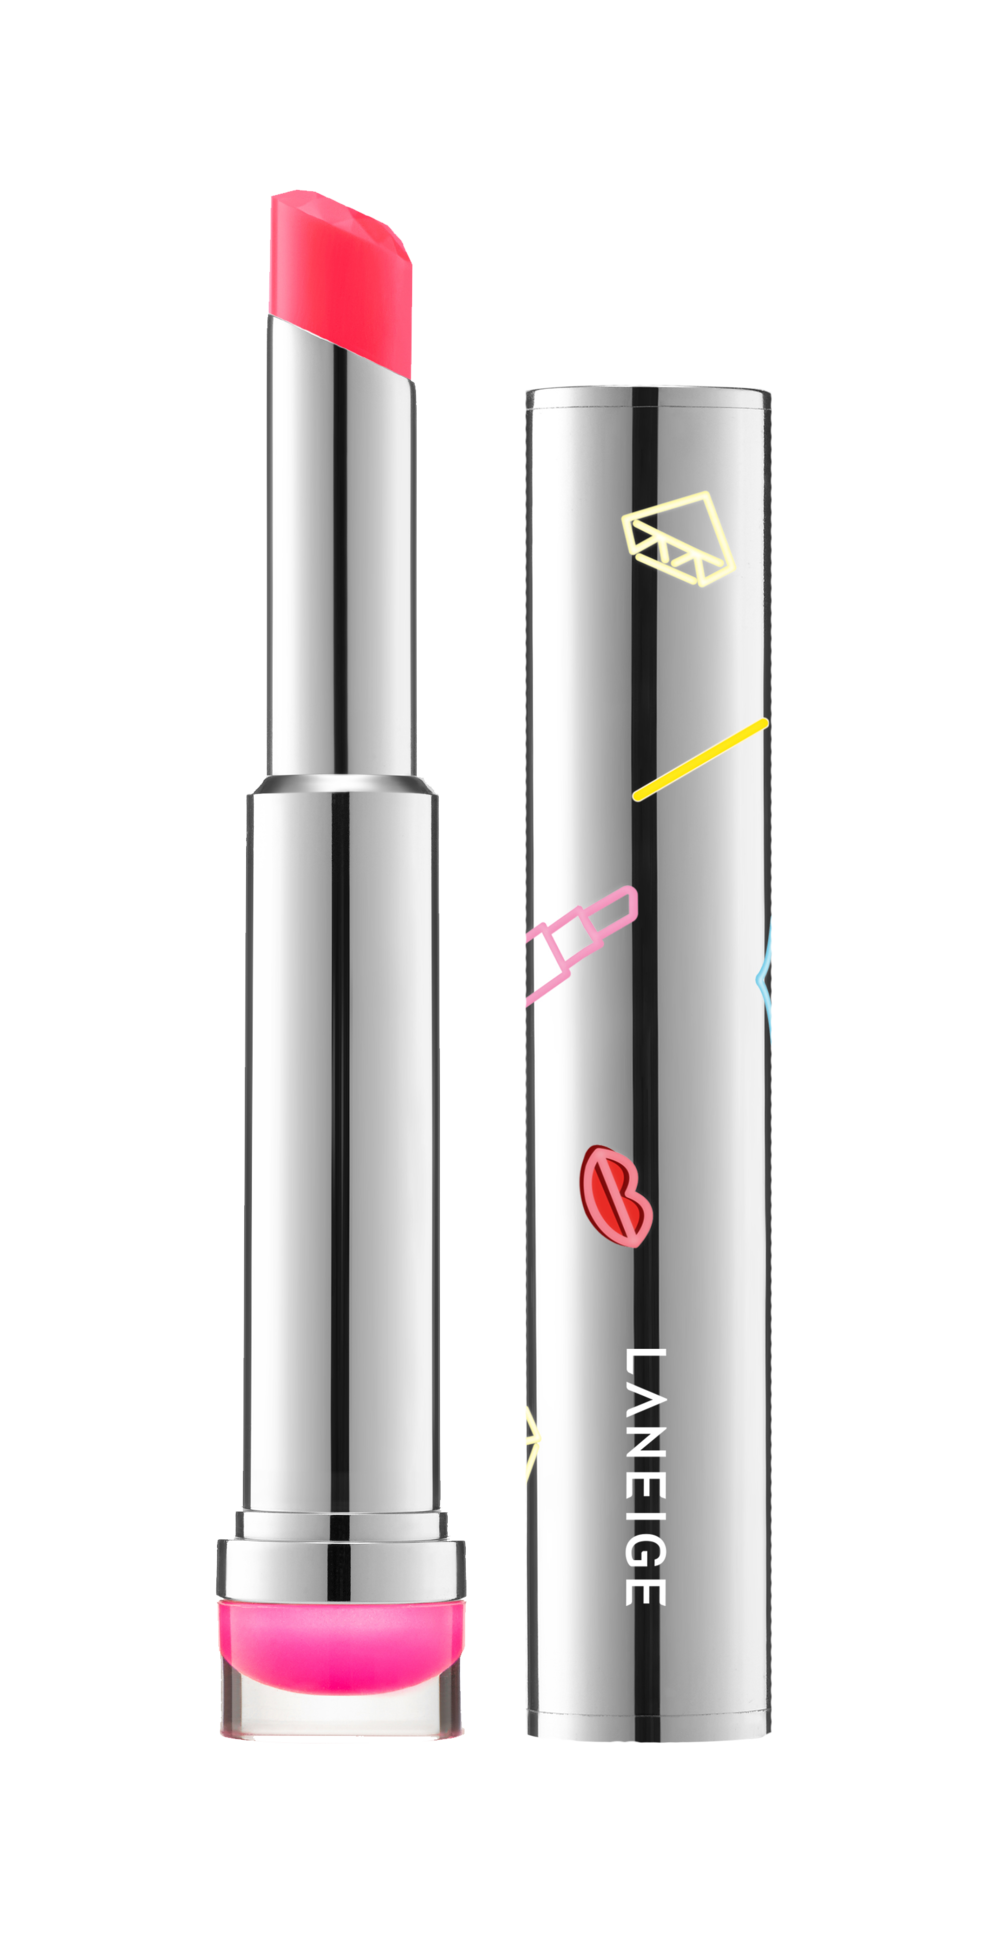 LANEIGE_Holiday Stained Glass Stick_Neon Pk_Open_Front_180912_DF.png